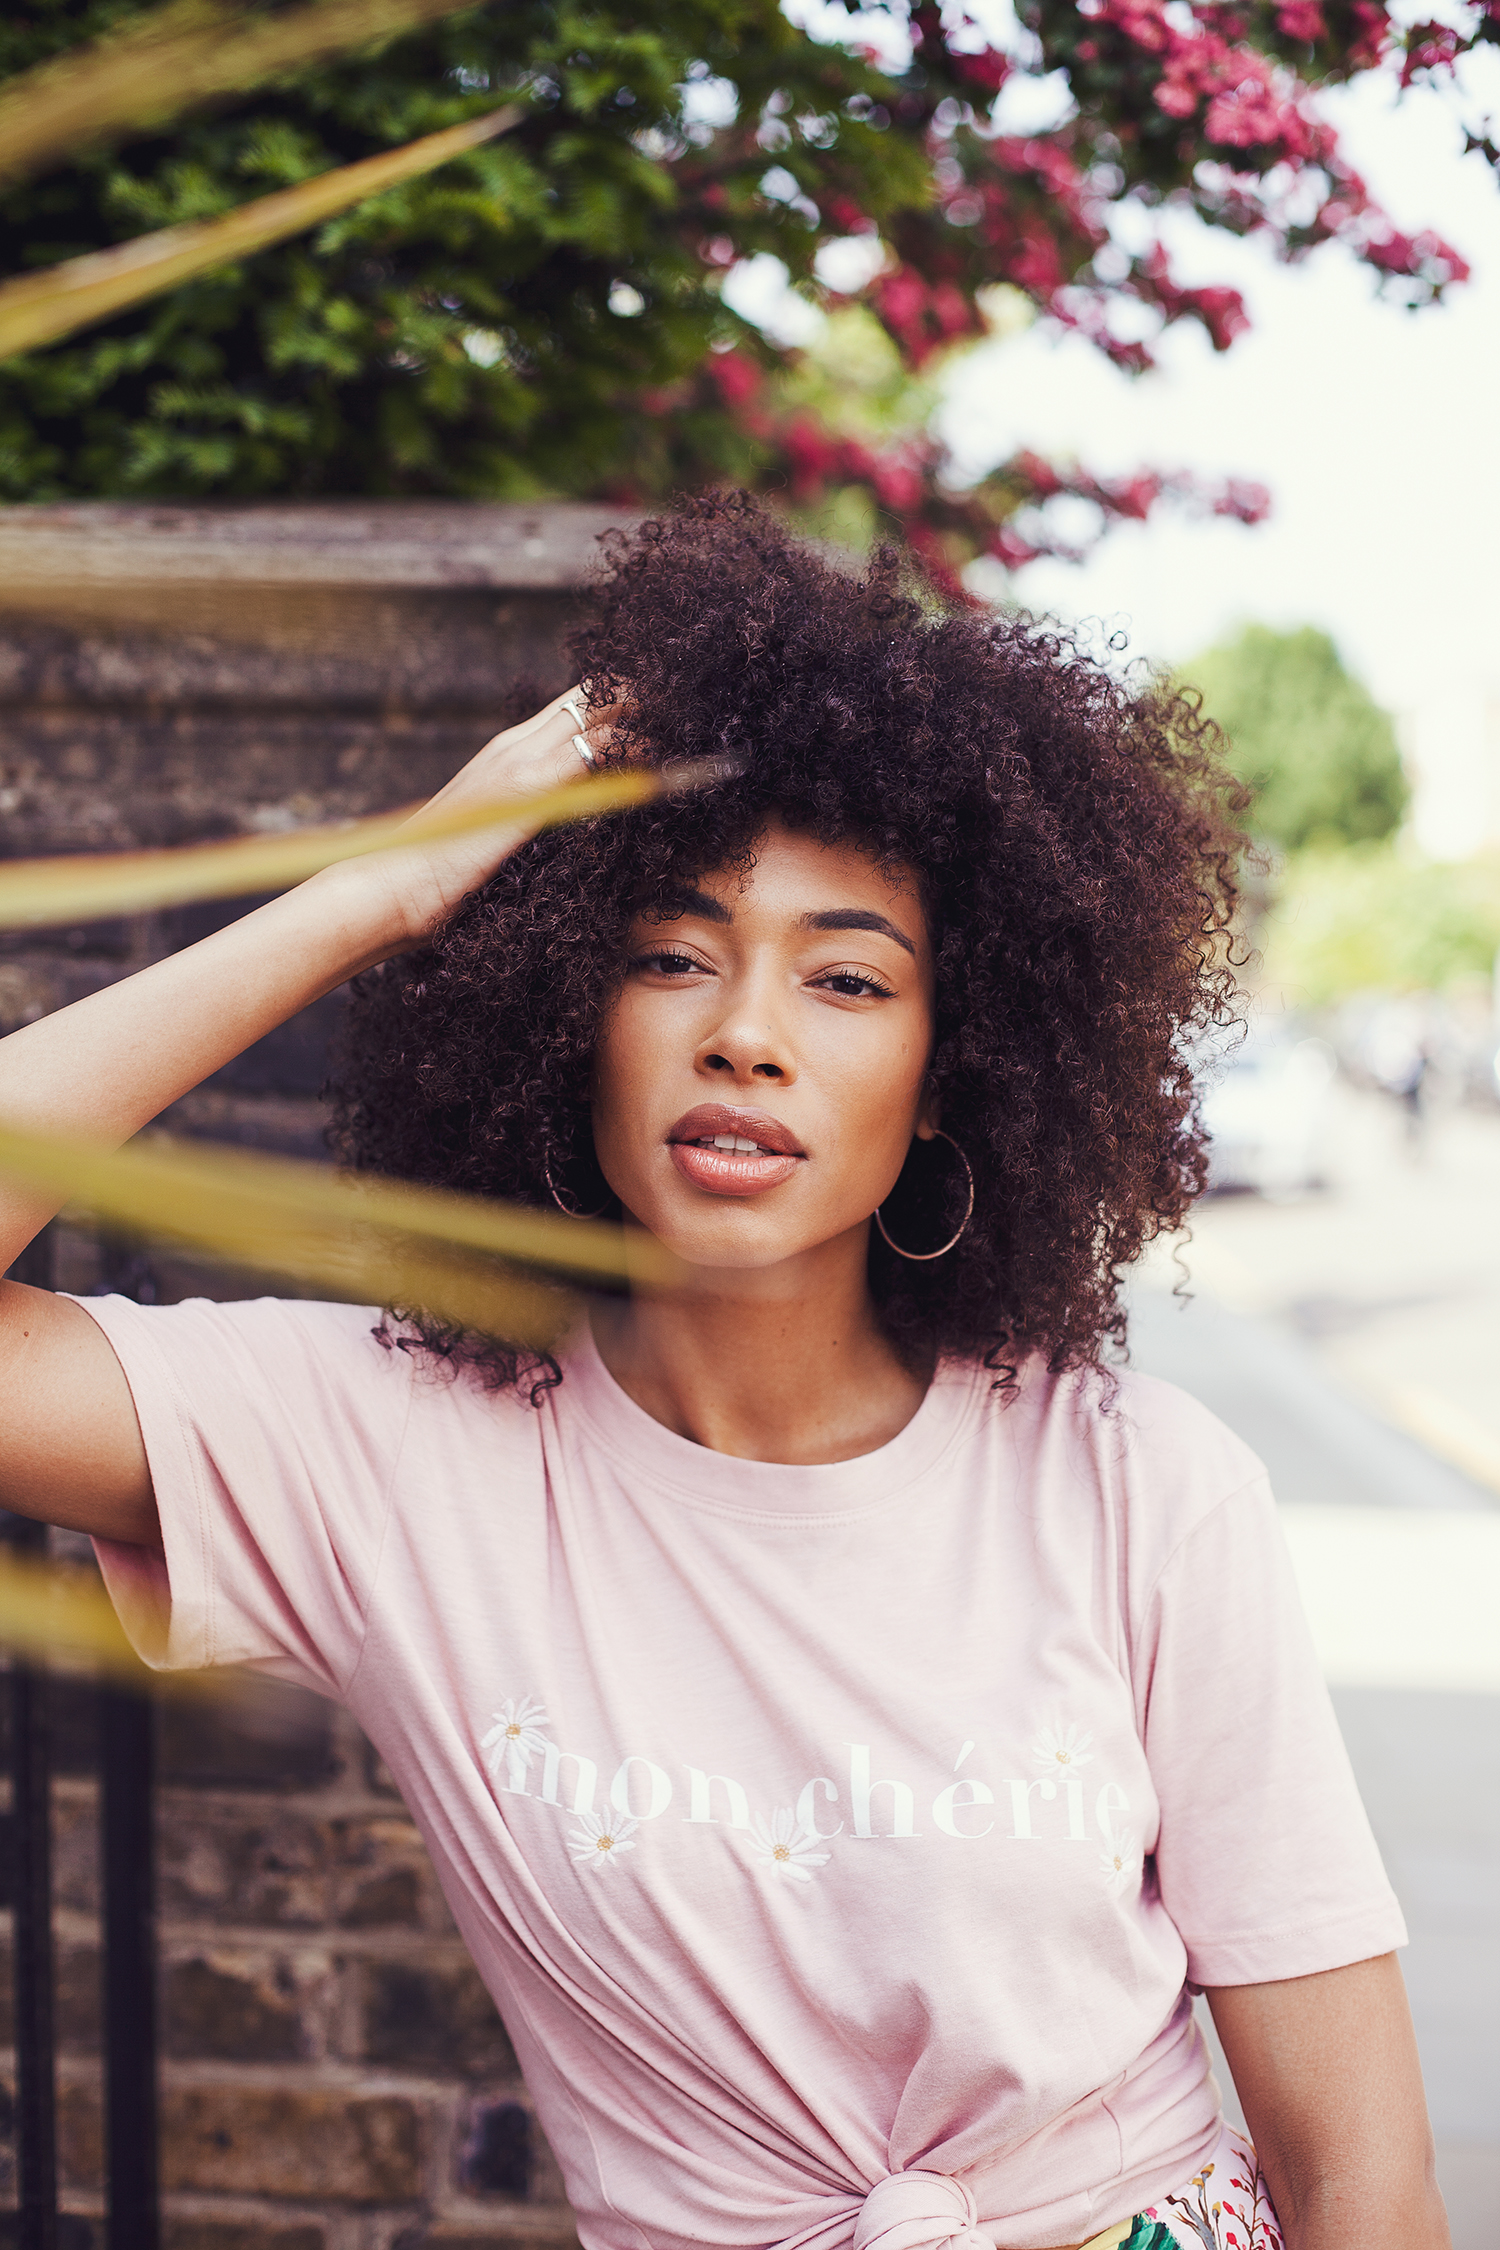 Portrait of fashion blogger Lesley in Notting Hill by Ailera Stone. Wearing a pink top among plants